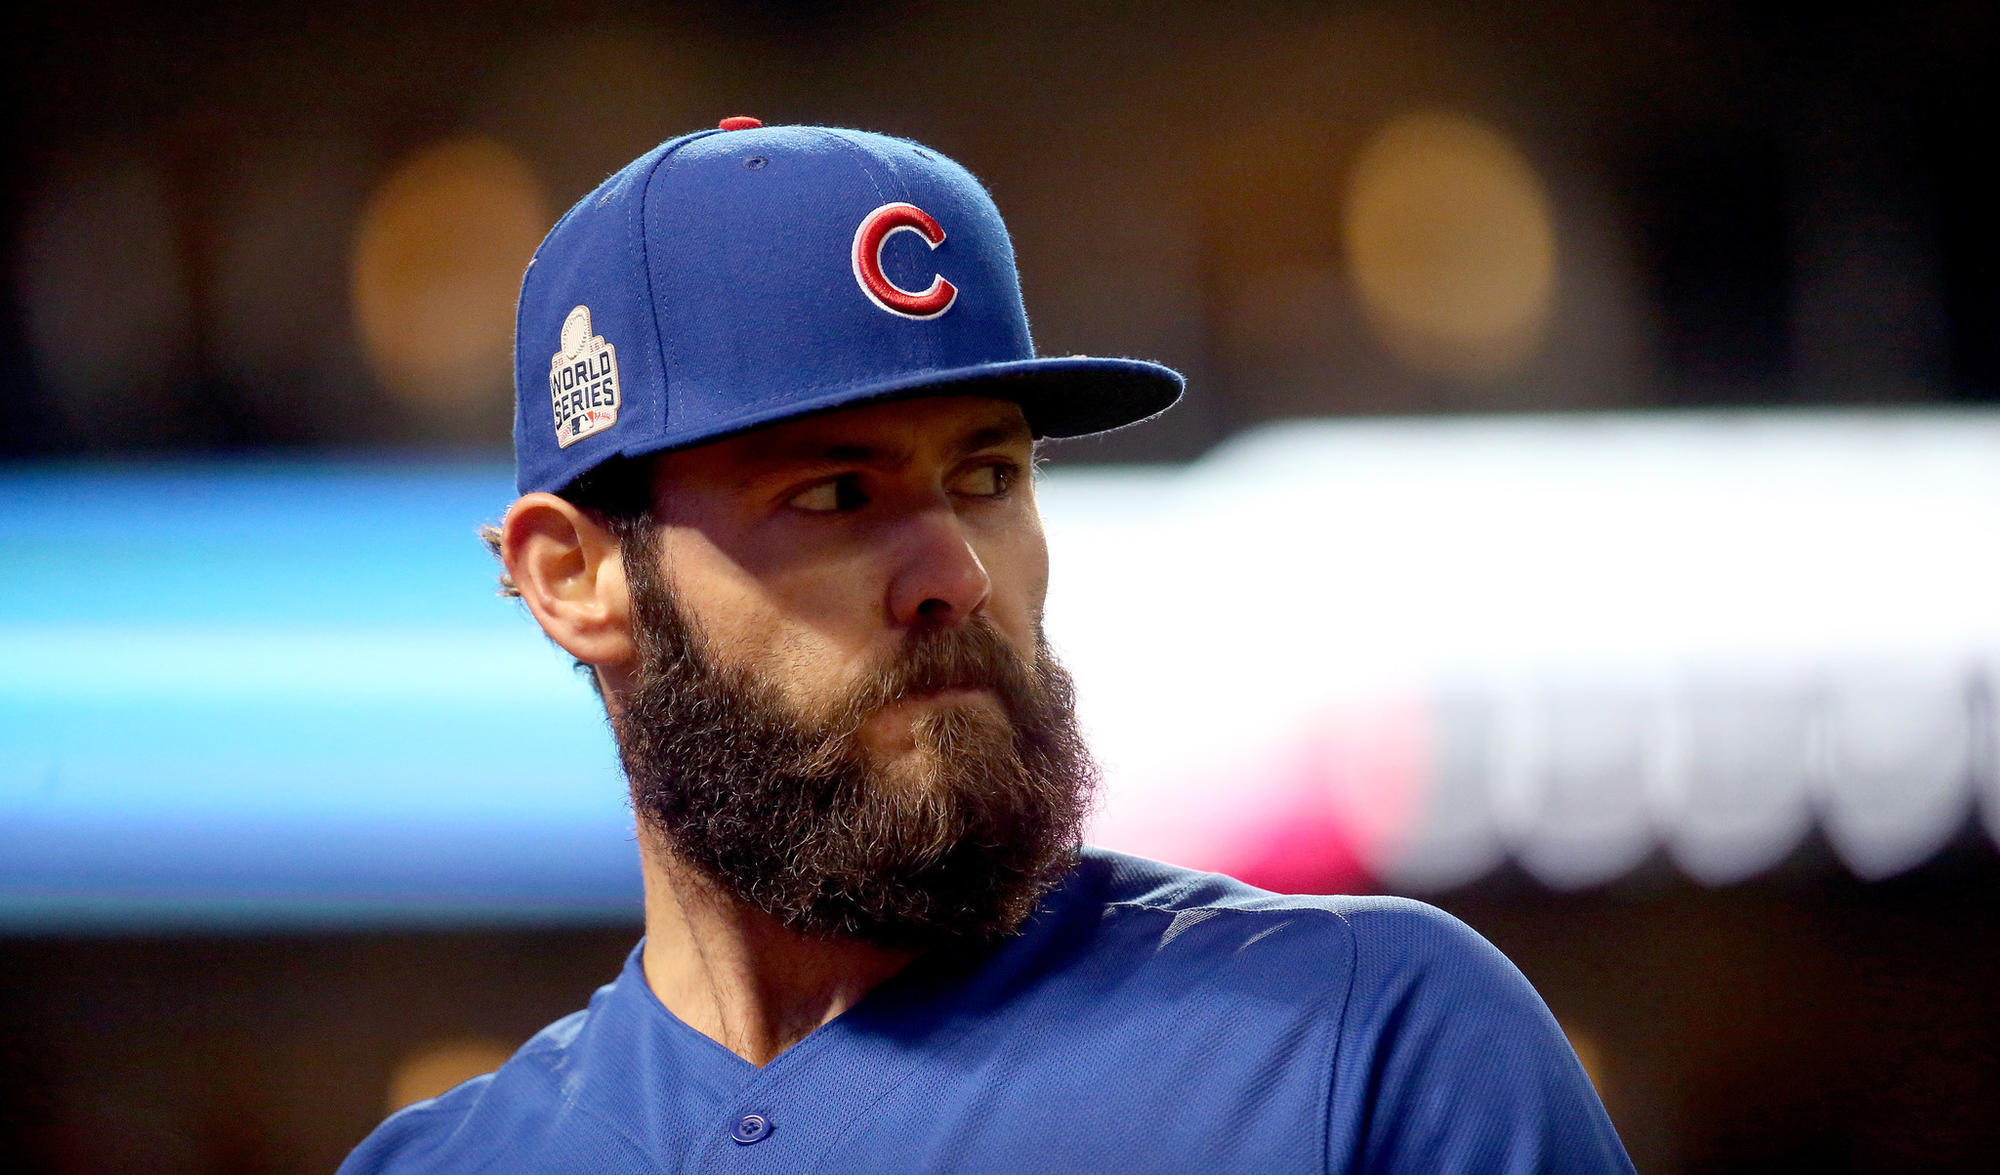 Ct-spt-jake-arrieta-cubs-brewers-cardinals-rosenbloom-20180214